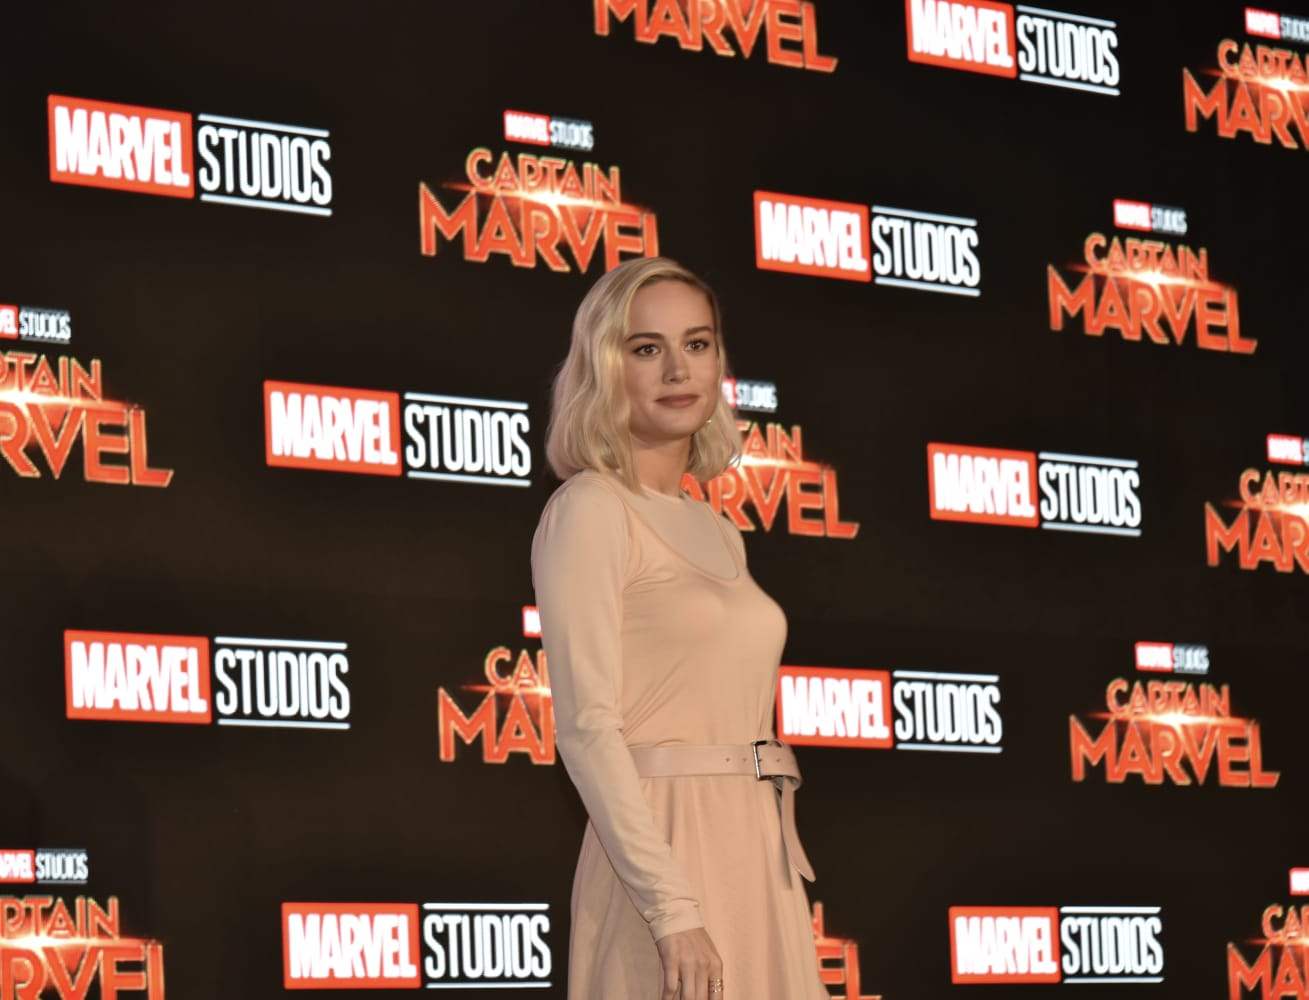 Captain Marvel's Brie Larson and the directors on women representation | CNA Lifestyle